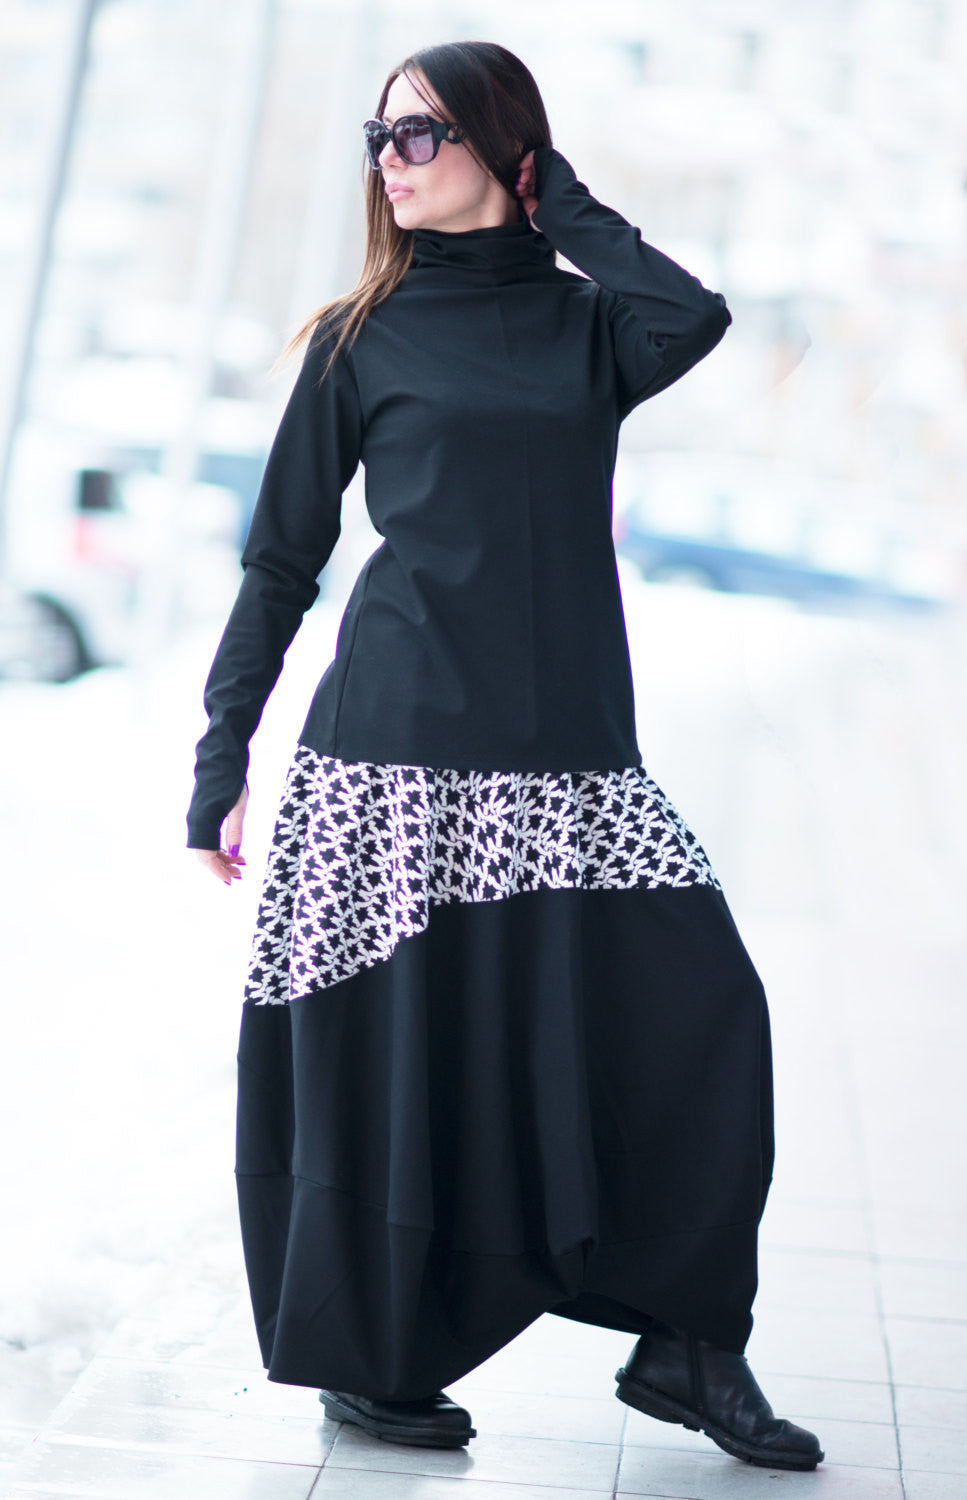 Black Shepherd's Plaid Cotton Skirt and Top - EUG FASHION